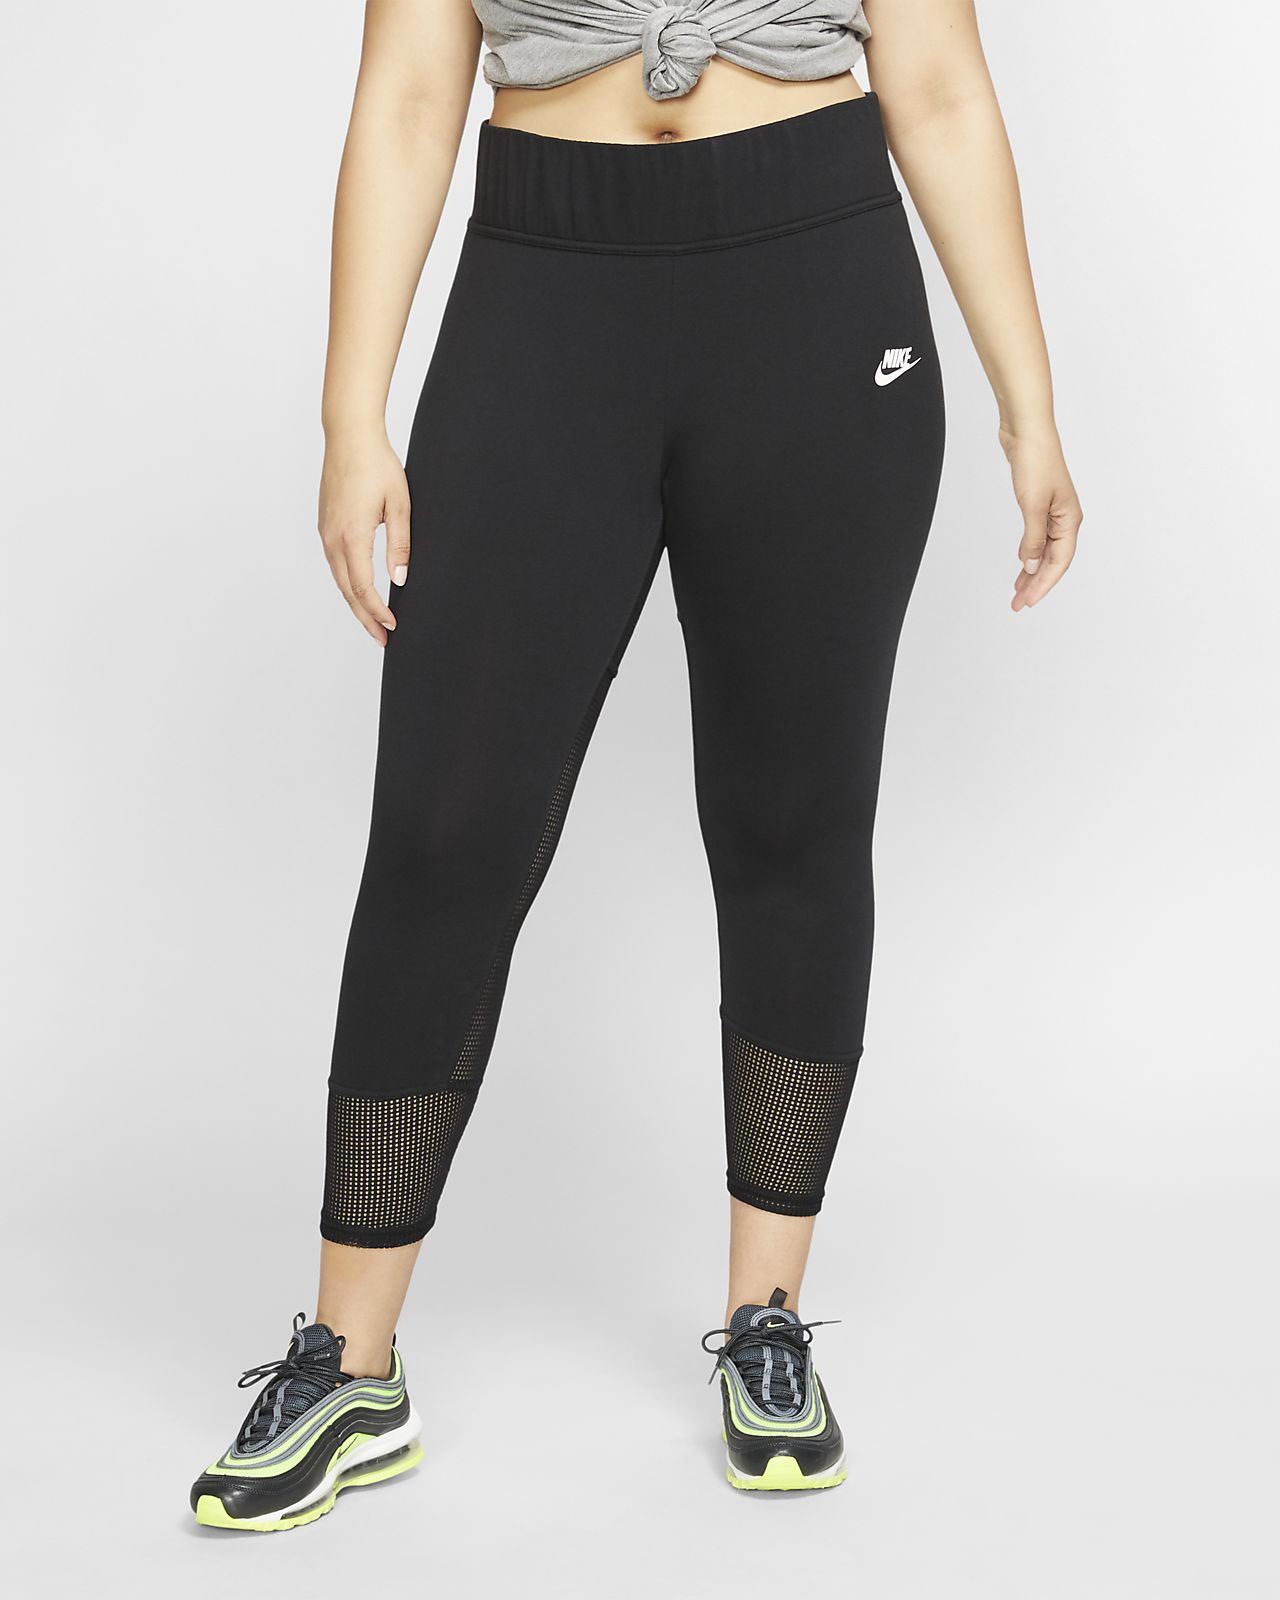 Nike Sportswear Women's Mesh Leggings (Plus Size)